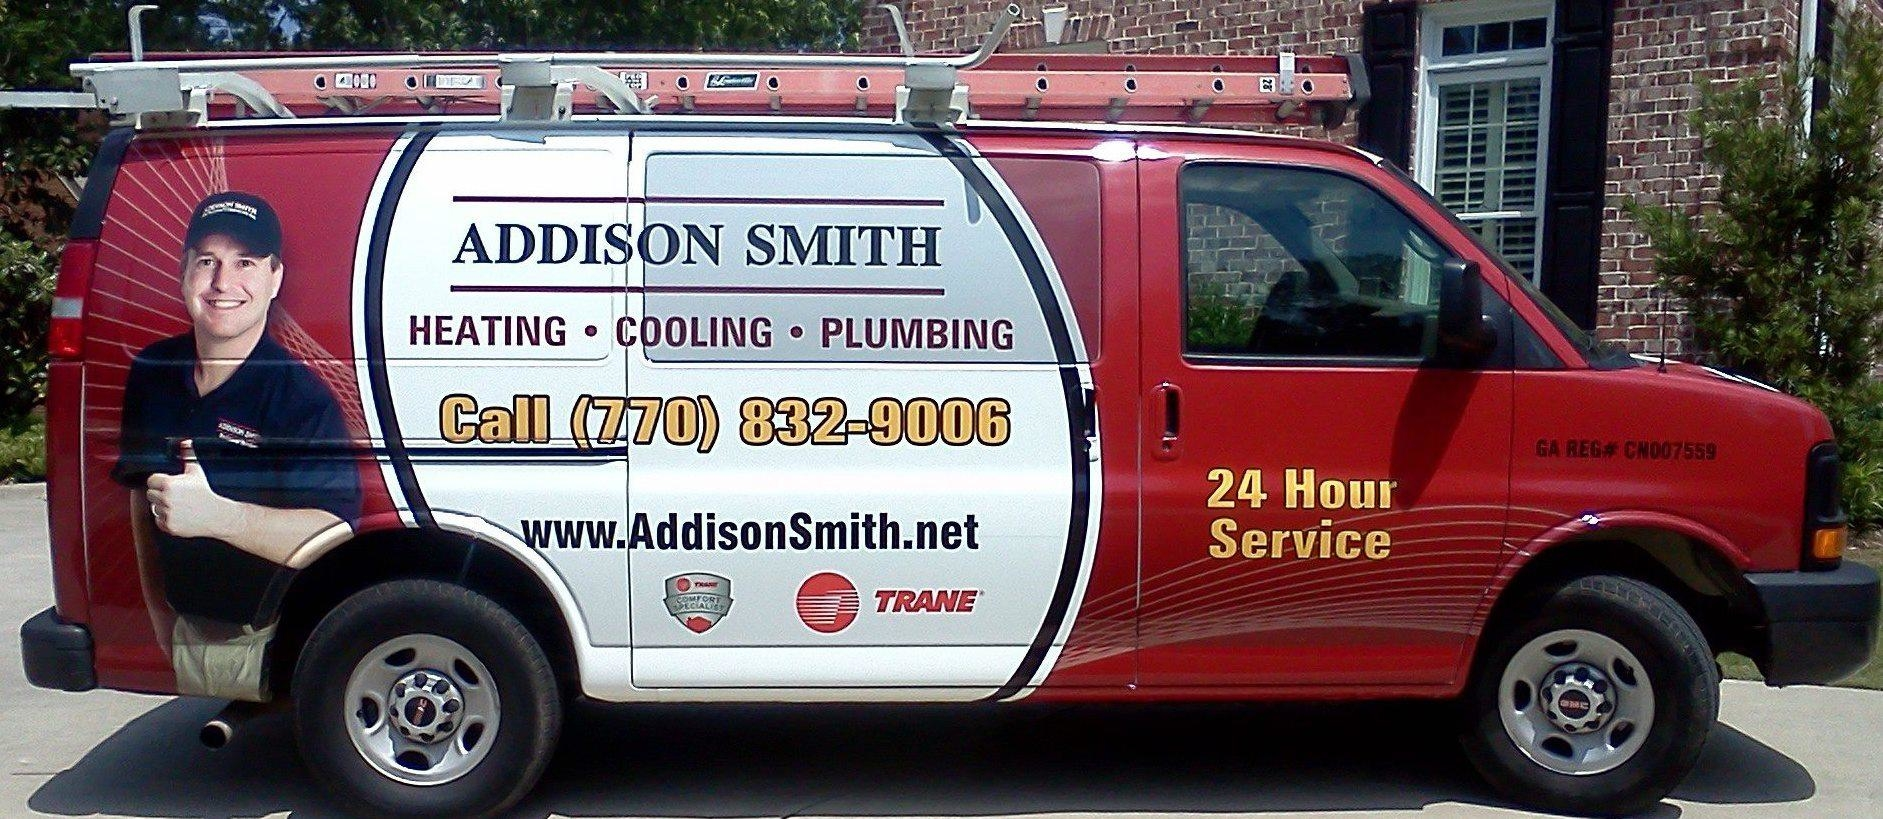 Addison Smith Mechanical Contractor, Inc. image 6